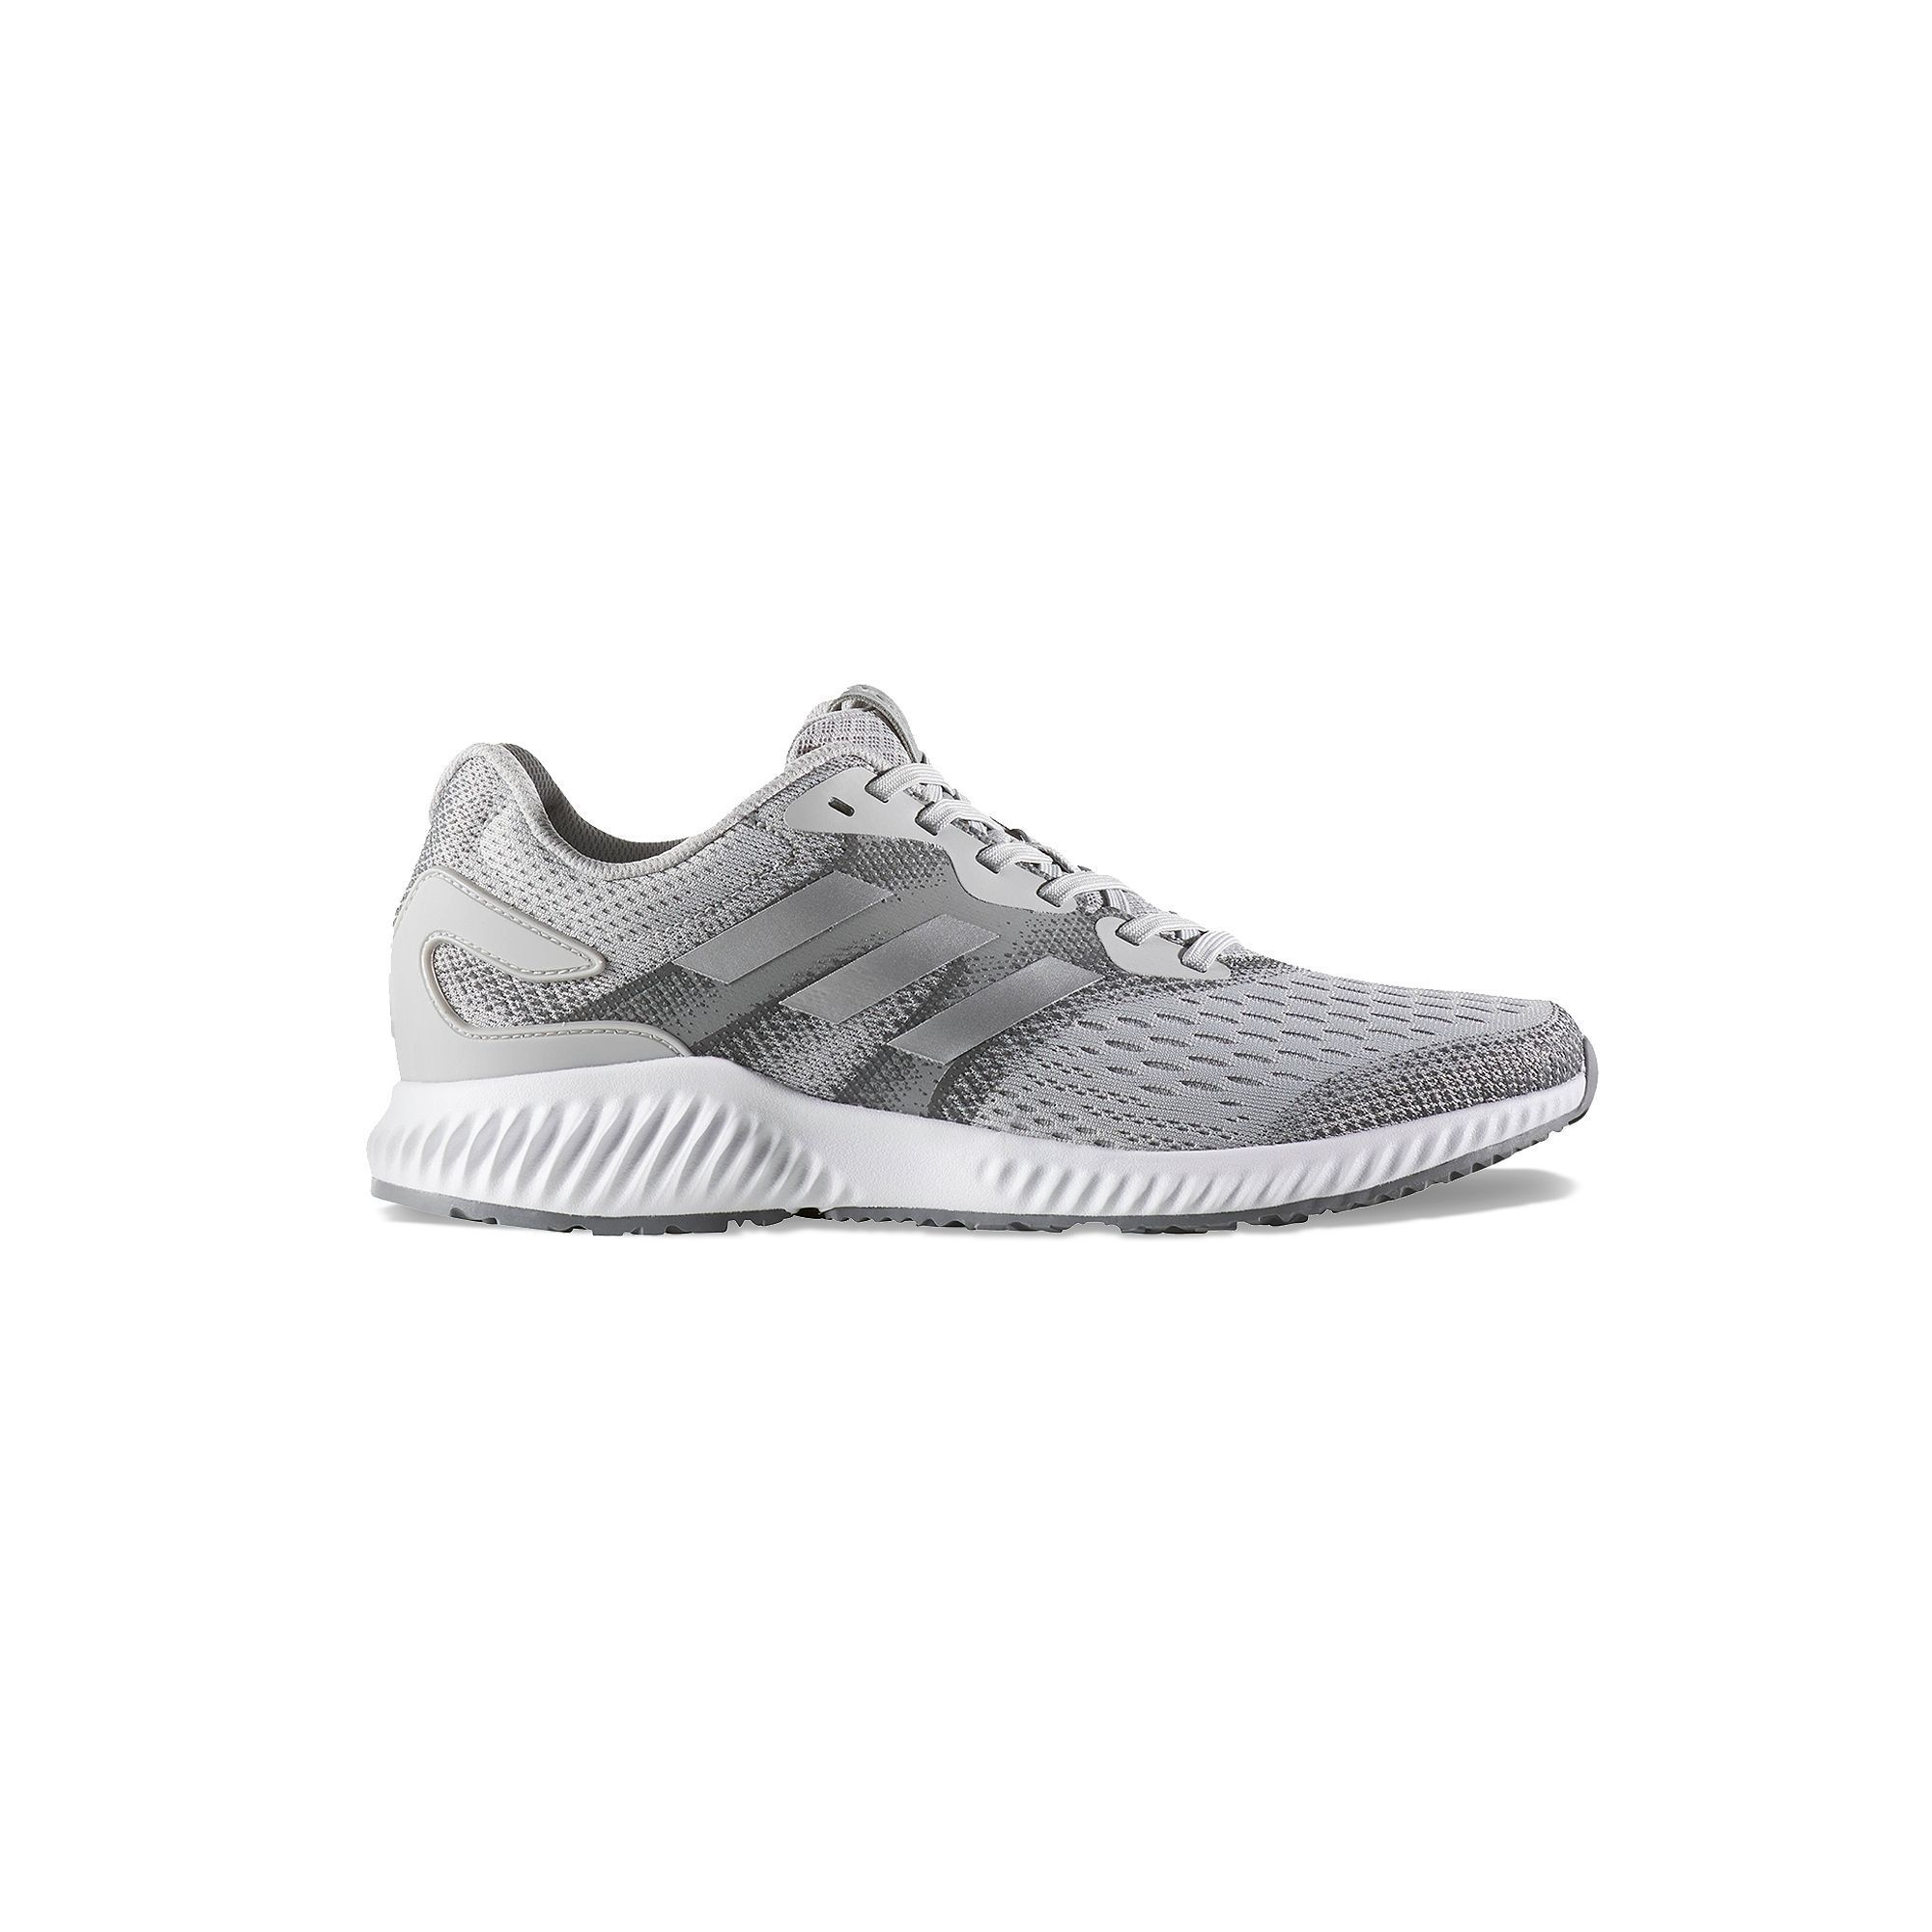 new arrivals a416e e4f00 Adidas Aerobounce Mens Running Shoes, Size 11.5, Med Grey